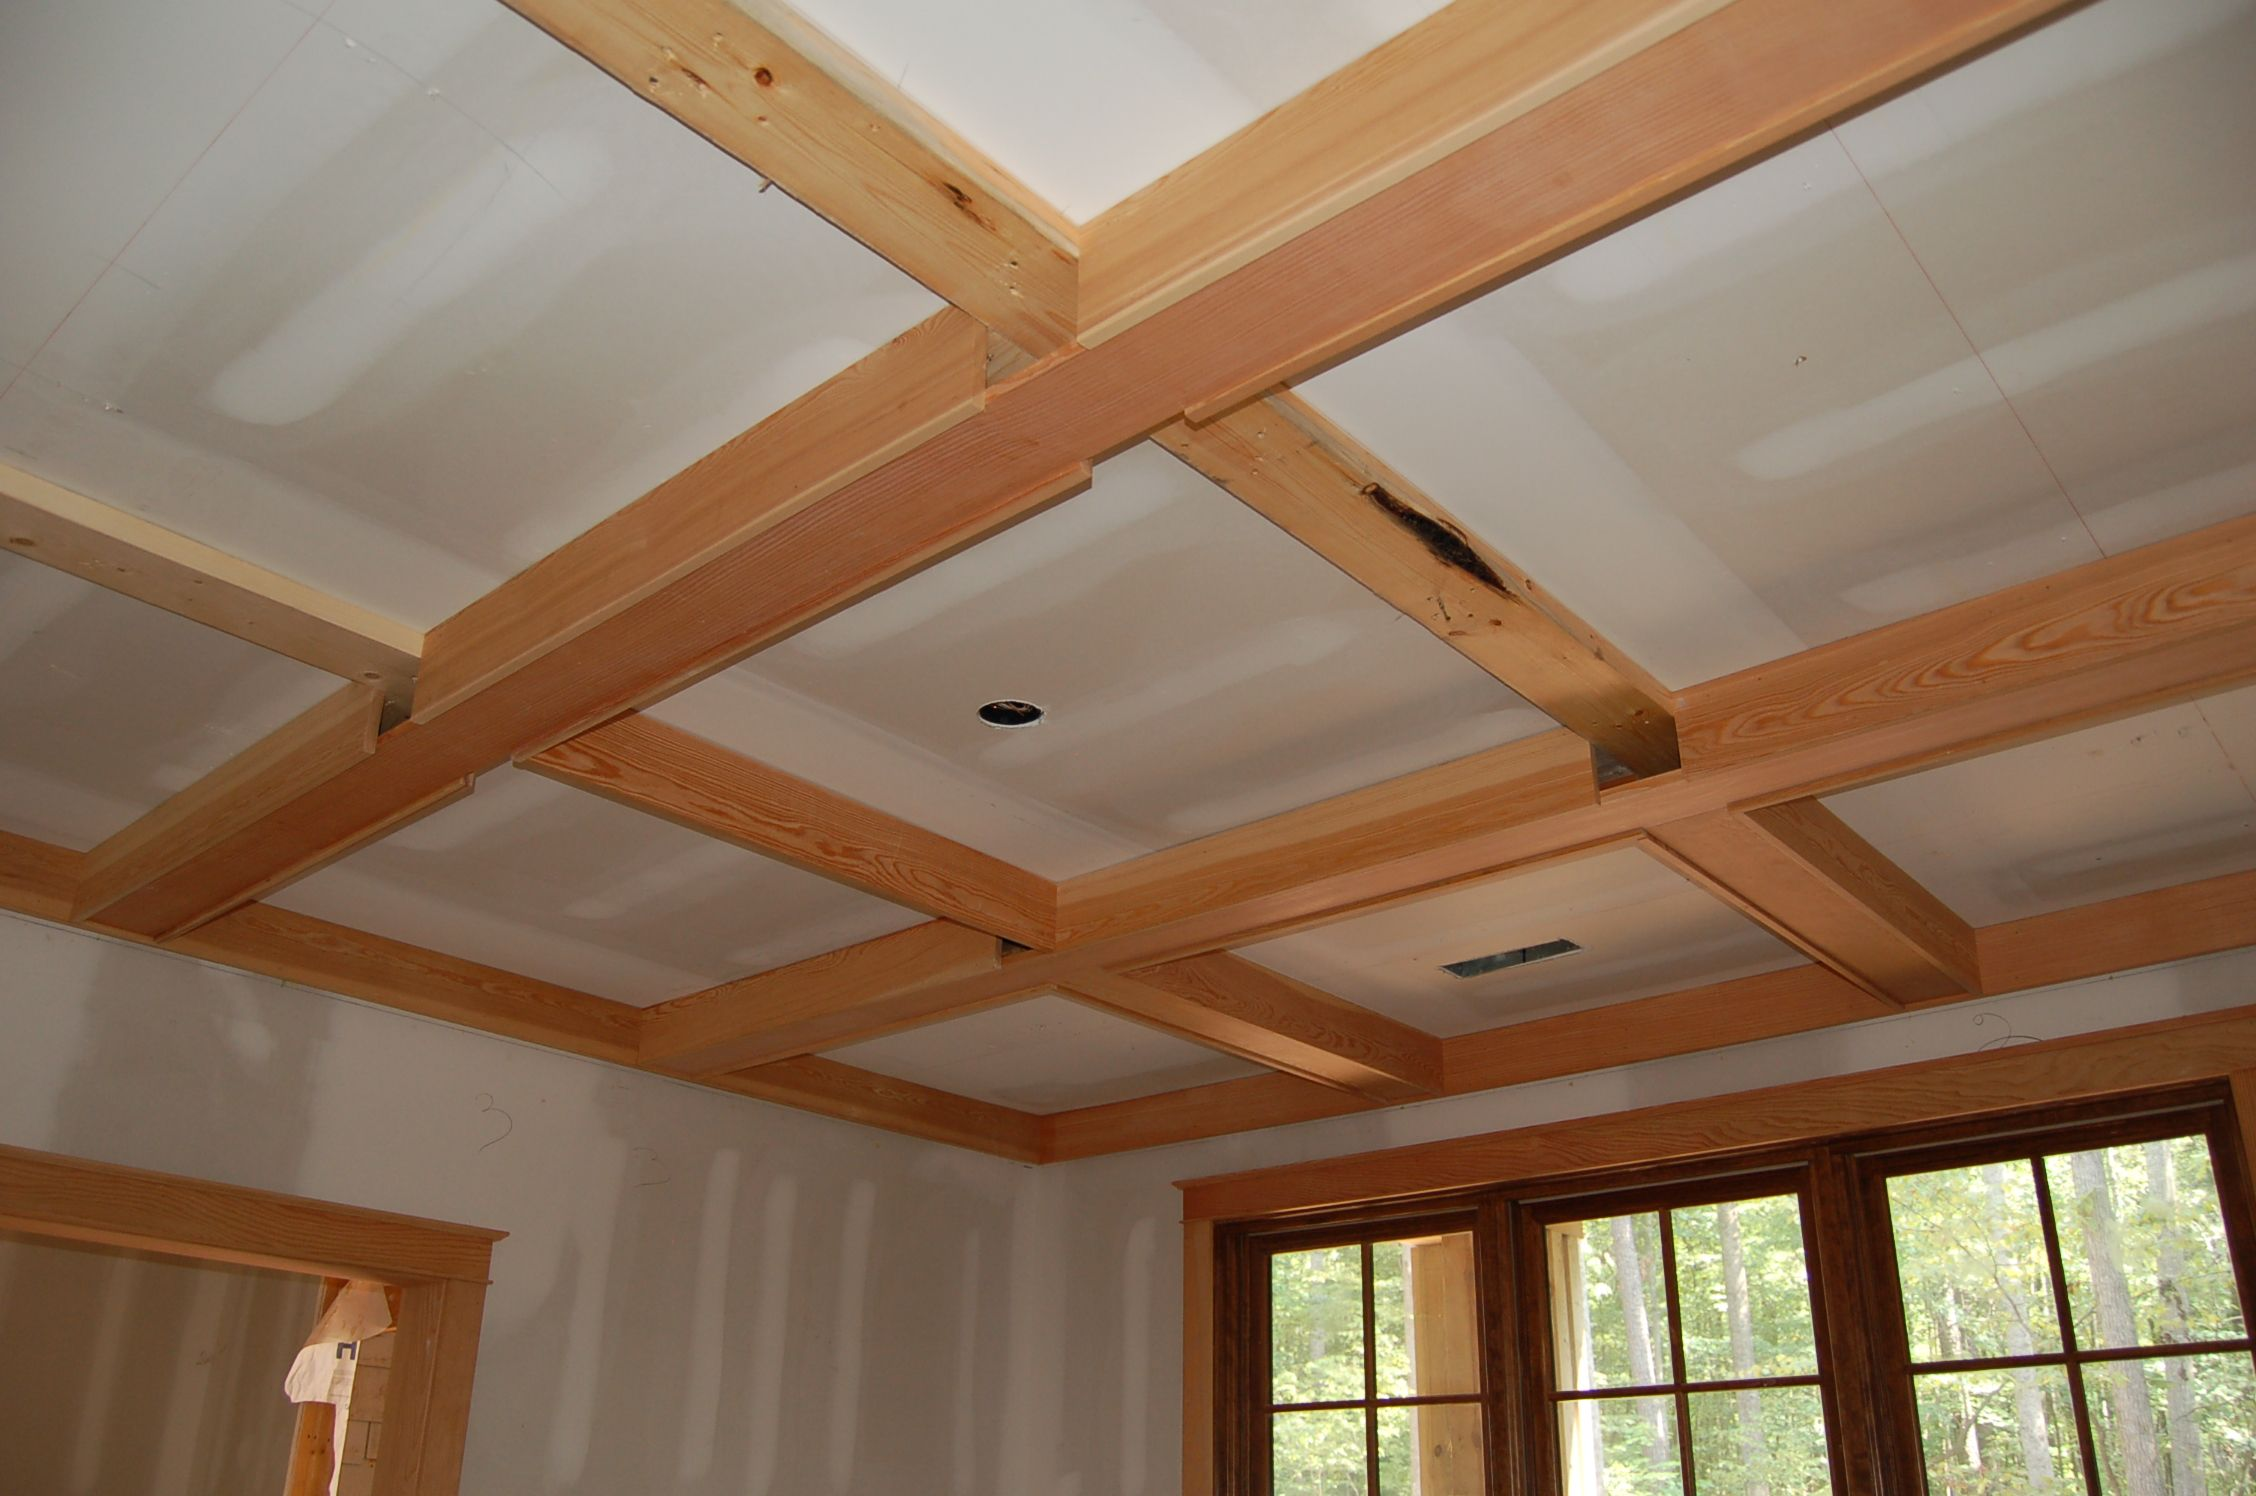 How to build a coffered ceiling - Ceiling Beams Ideas Ceiling You Could Do A Coffered Ceiling An Infinite Amount Of Options For The Home Pinterest Coffered Ceilings Coffer And